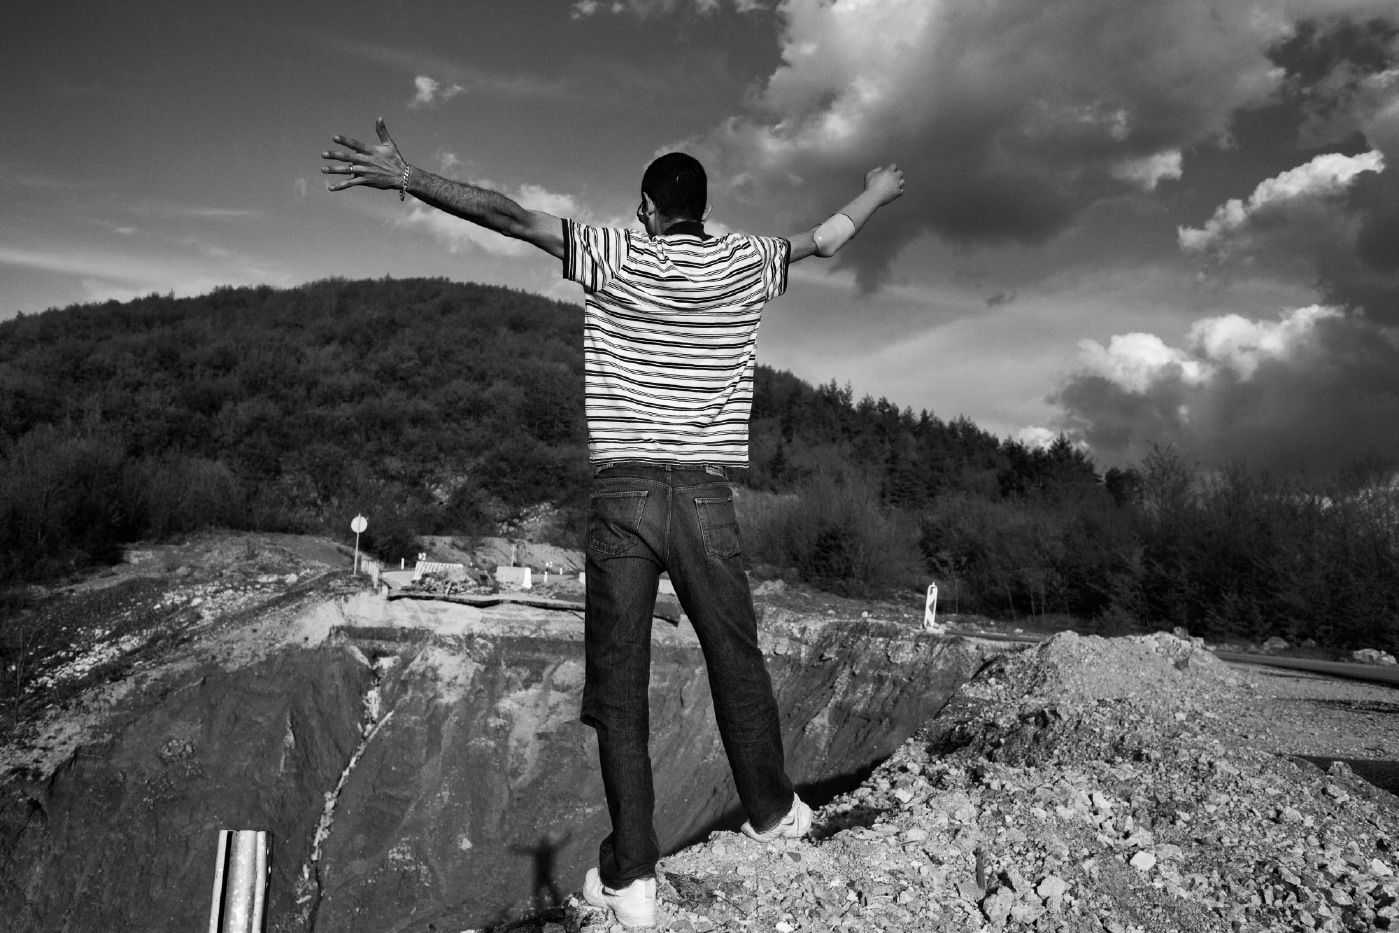 Adis Smajić, 32-year-old, looks at his shadow on the bottom of a collapsed street. Adis was 13 years old when he had an accident on a land mine. Since one year he became father and now he is living the best time of his life. Sarajevo, Bosnia and Herzegovina, 2014. © Matteo Bastianelli